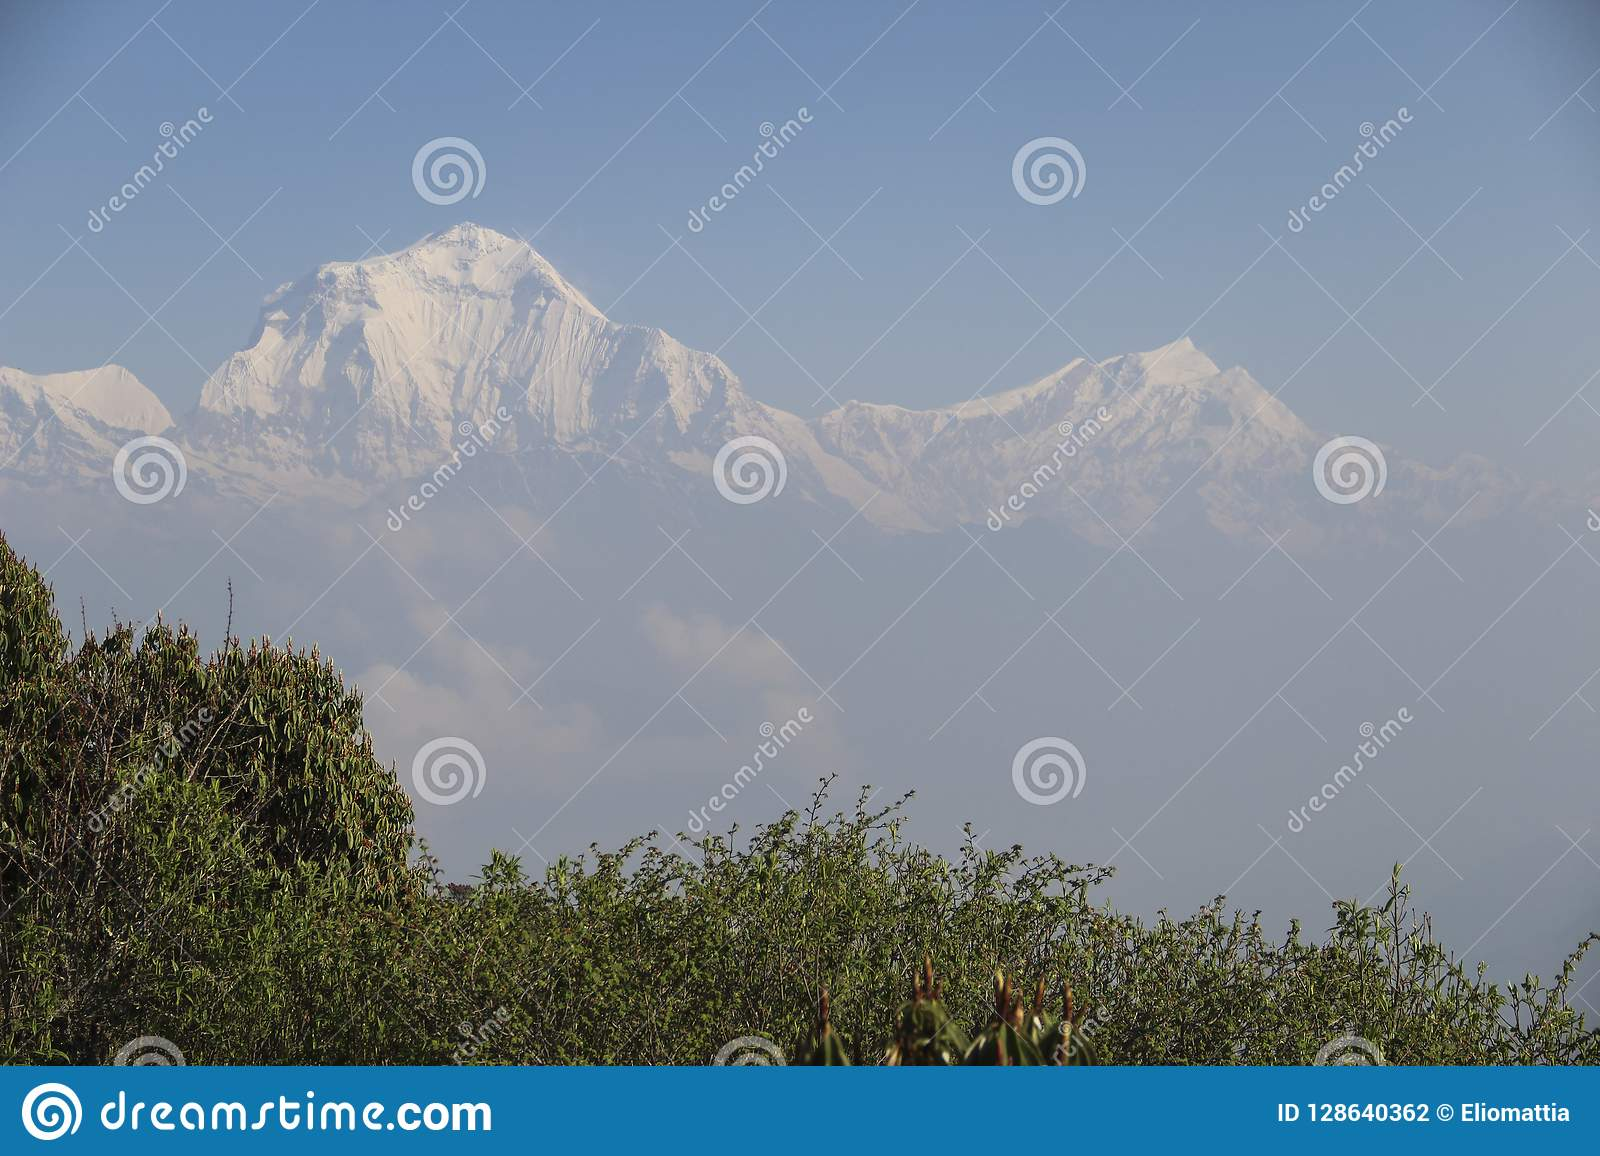 View of the Annapurna range from Poon Hill at sunrise, Ghorepani/Ghandruk, Nepal